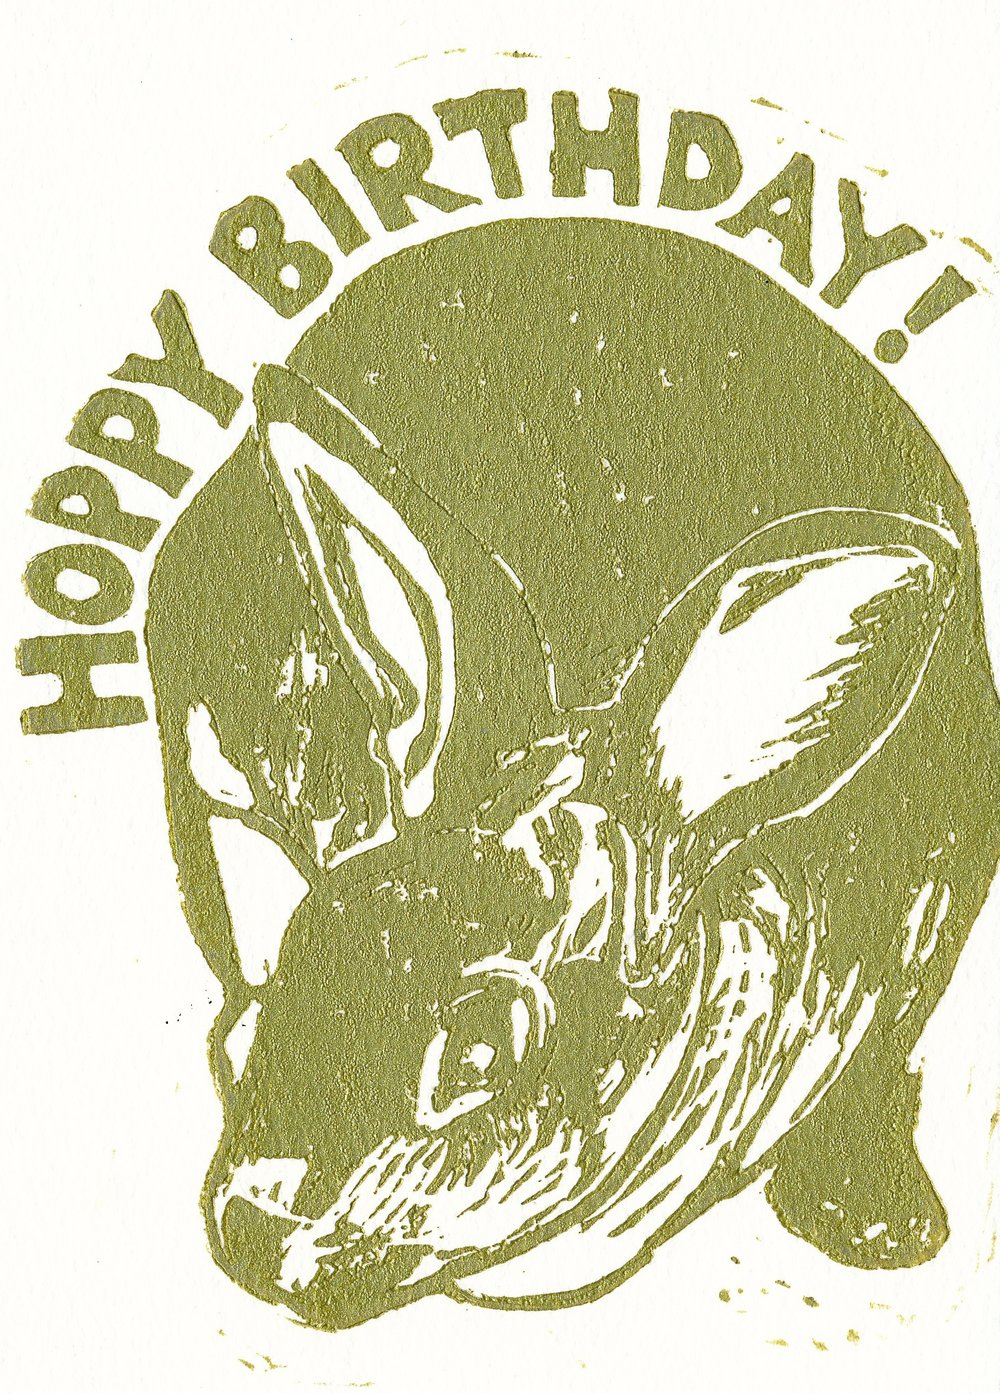 Hoppy Birthday Bunny card hand printed in gold metallic ink.